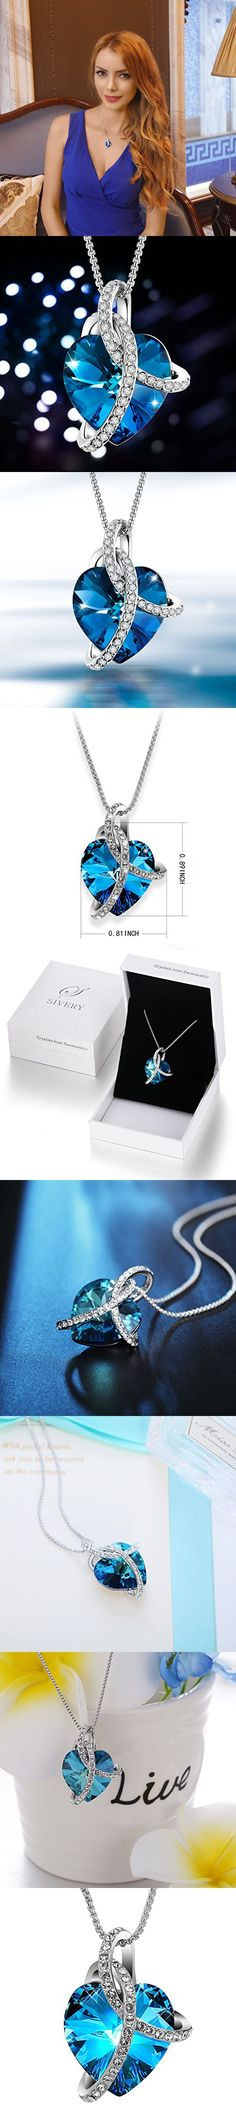 """SIVERY Ocean Blue """"Love Heart"""" Fashion Pendant Necklace, Made with Swarovski Crystals, Valentines Day Gifts"""